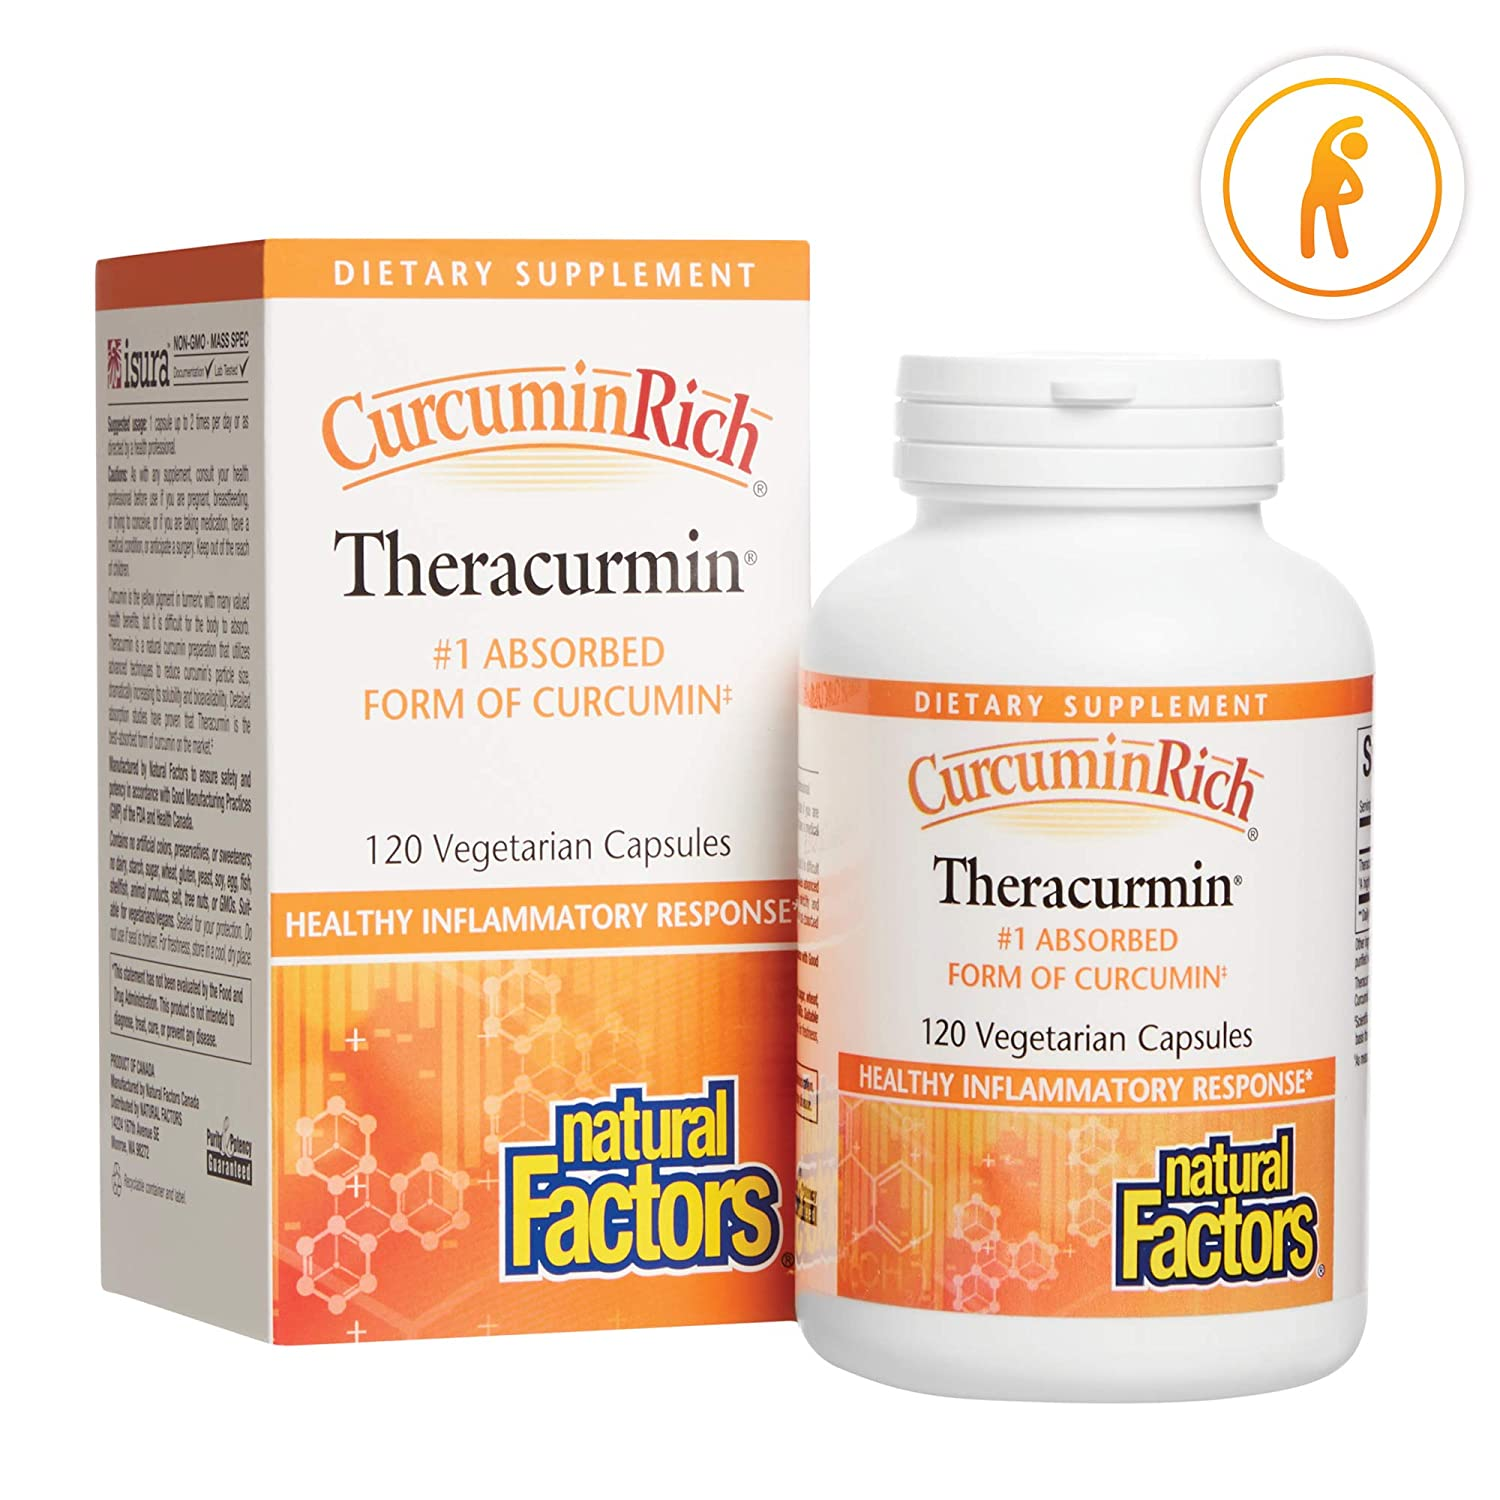 CurcuminRich Theracurmin by Natural Factors, Turmeric, 120 capsules (120 servings)